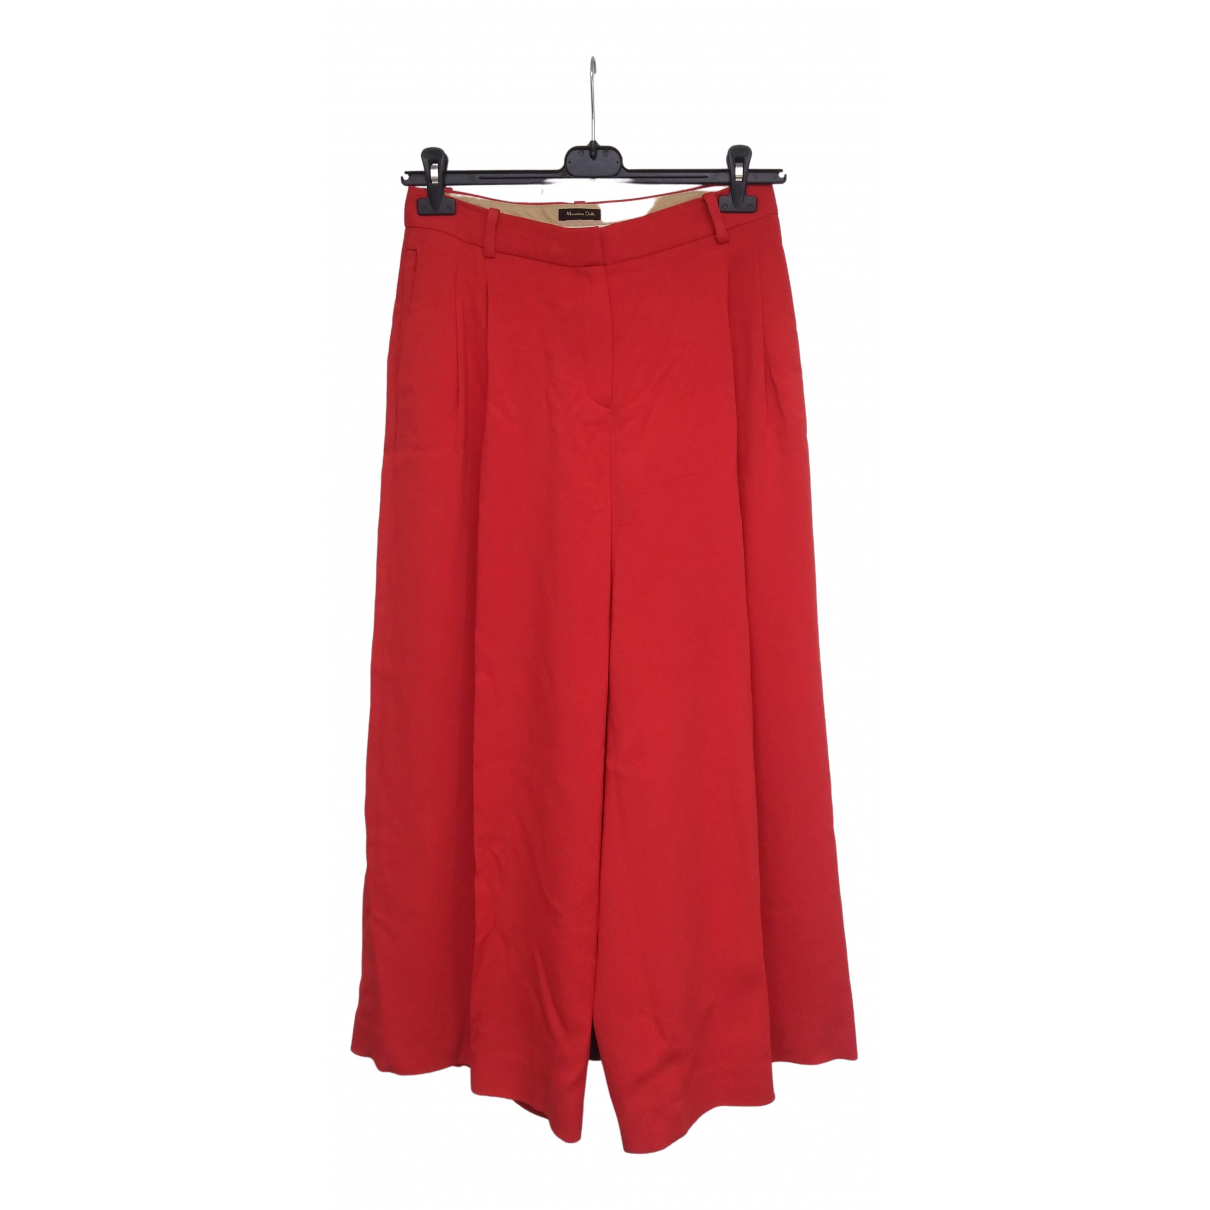 Massimo Dutti \N Hose in  Rot Polyester